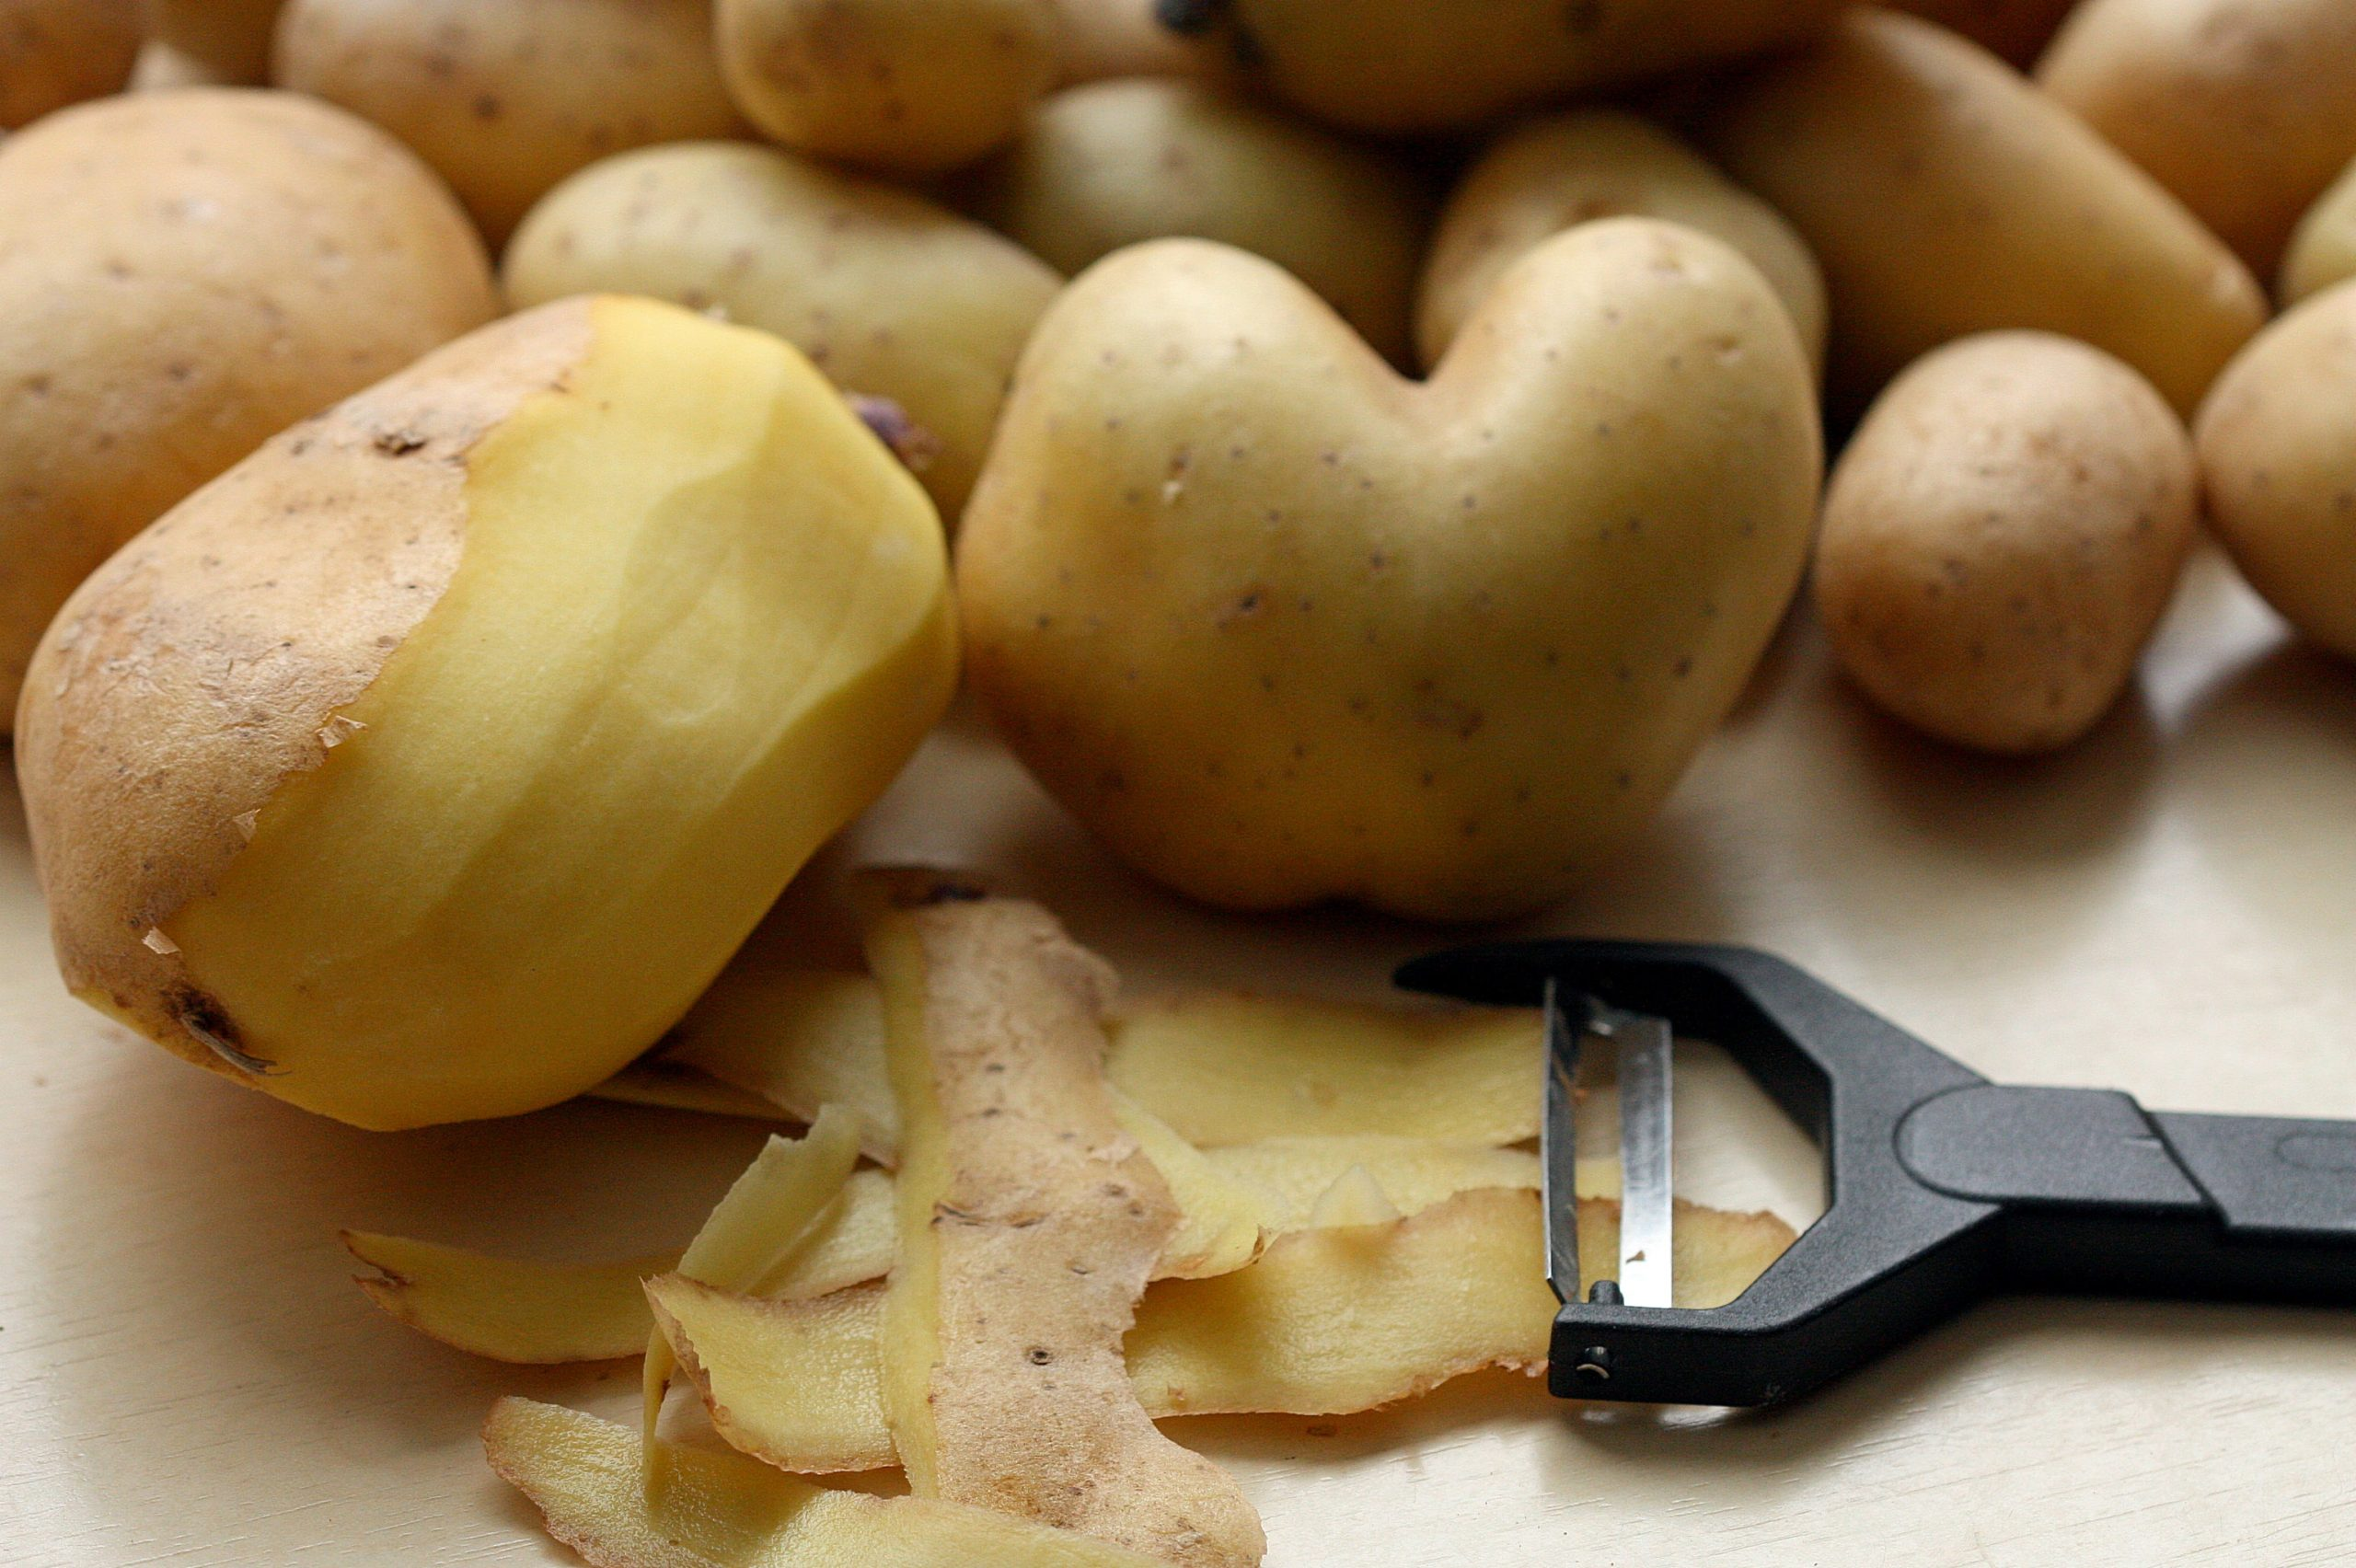 Make peeling the vegetables quicker and easier with an Electric Potato Peeler. Quickly prepare and peel your veg with these quick and easy to use peelers.